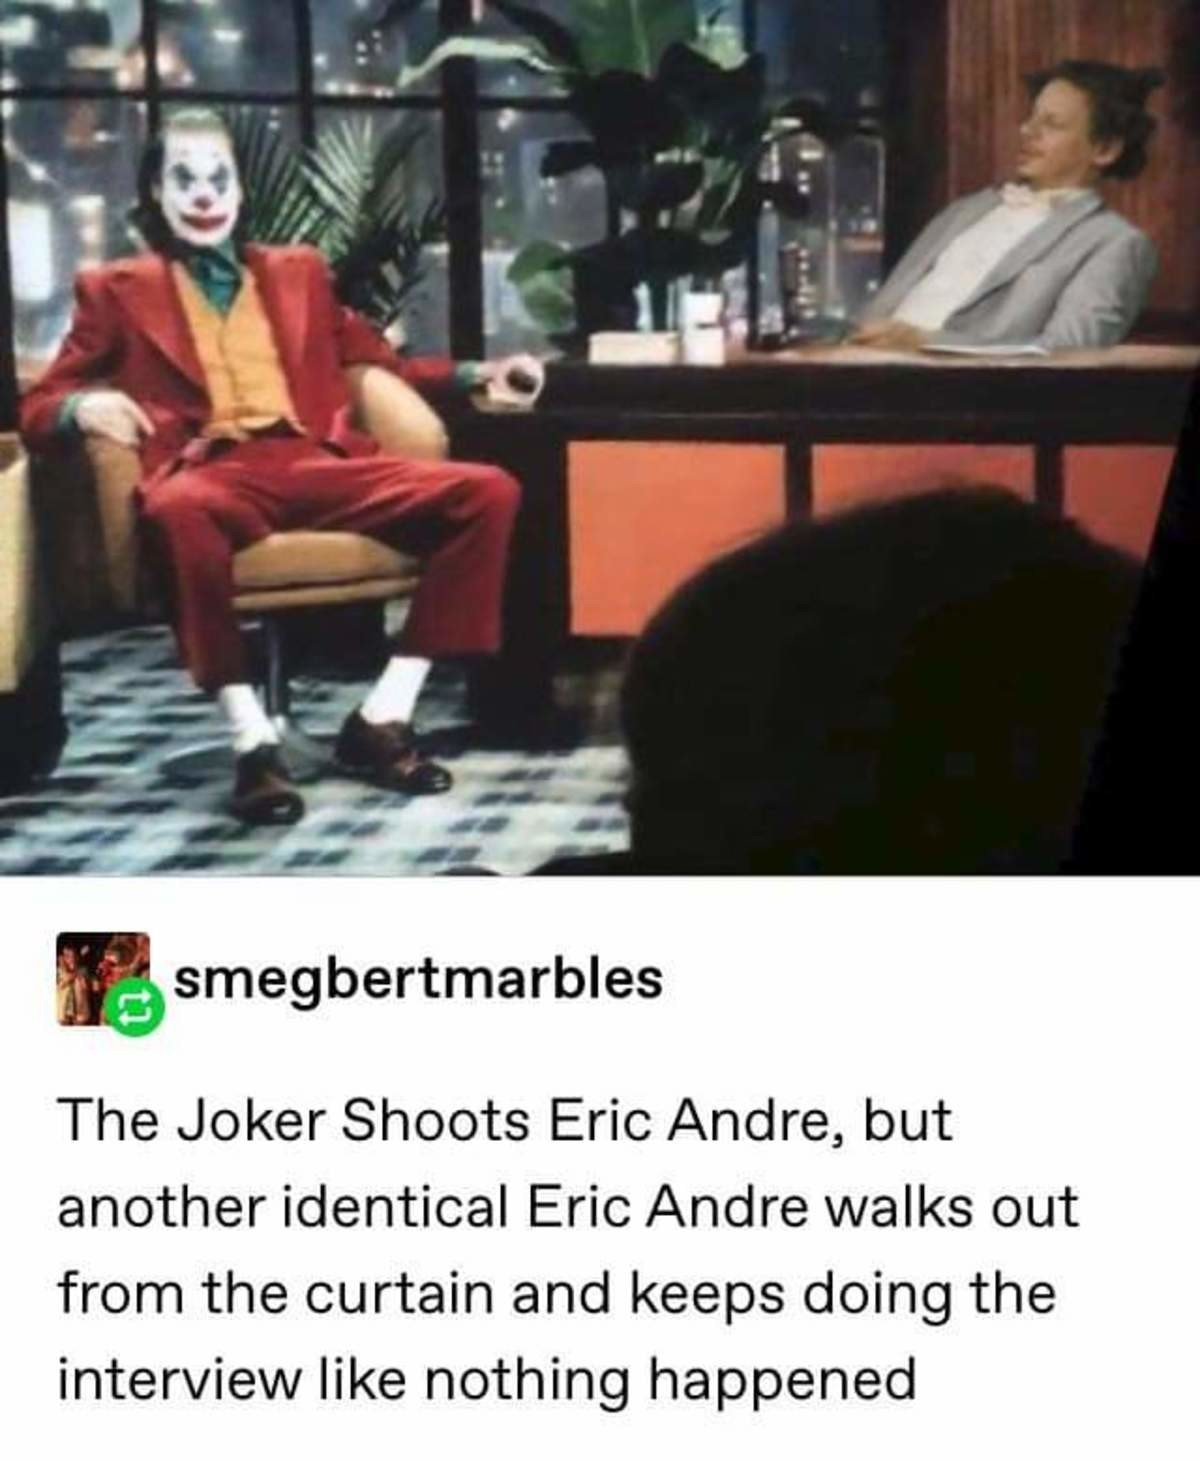 heady midterm abnormal Dinosaur. .. The real question is did Joker hallucinate it or did Eric use his immortal powers again